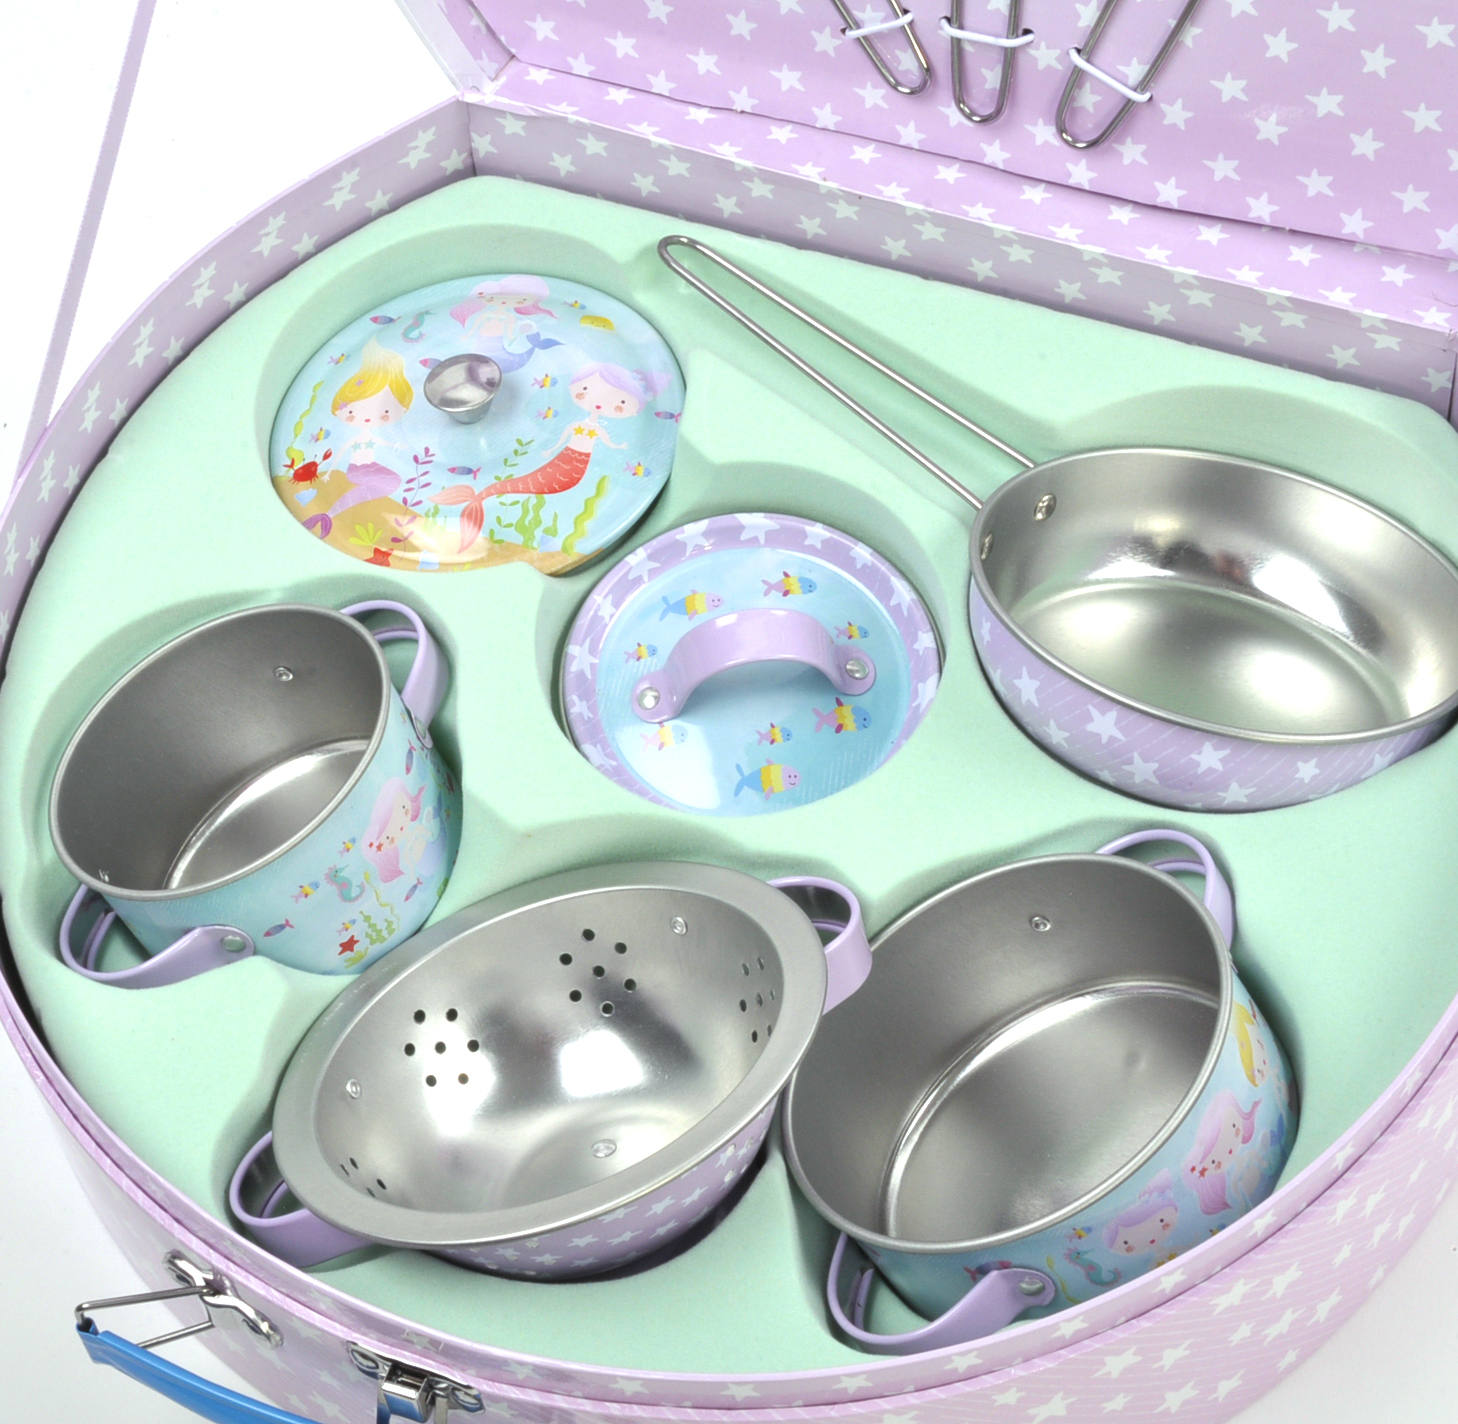 Mermaid Chef\'s Kitchen Set - 10pc Miniature Cooking Set in Round ...